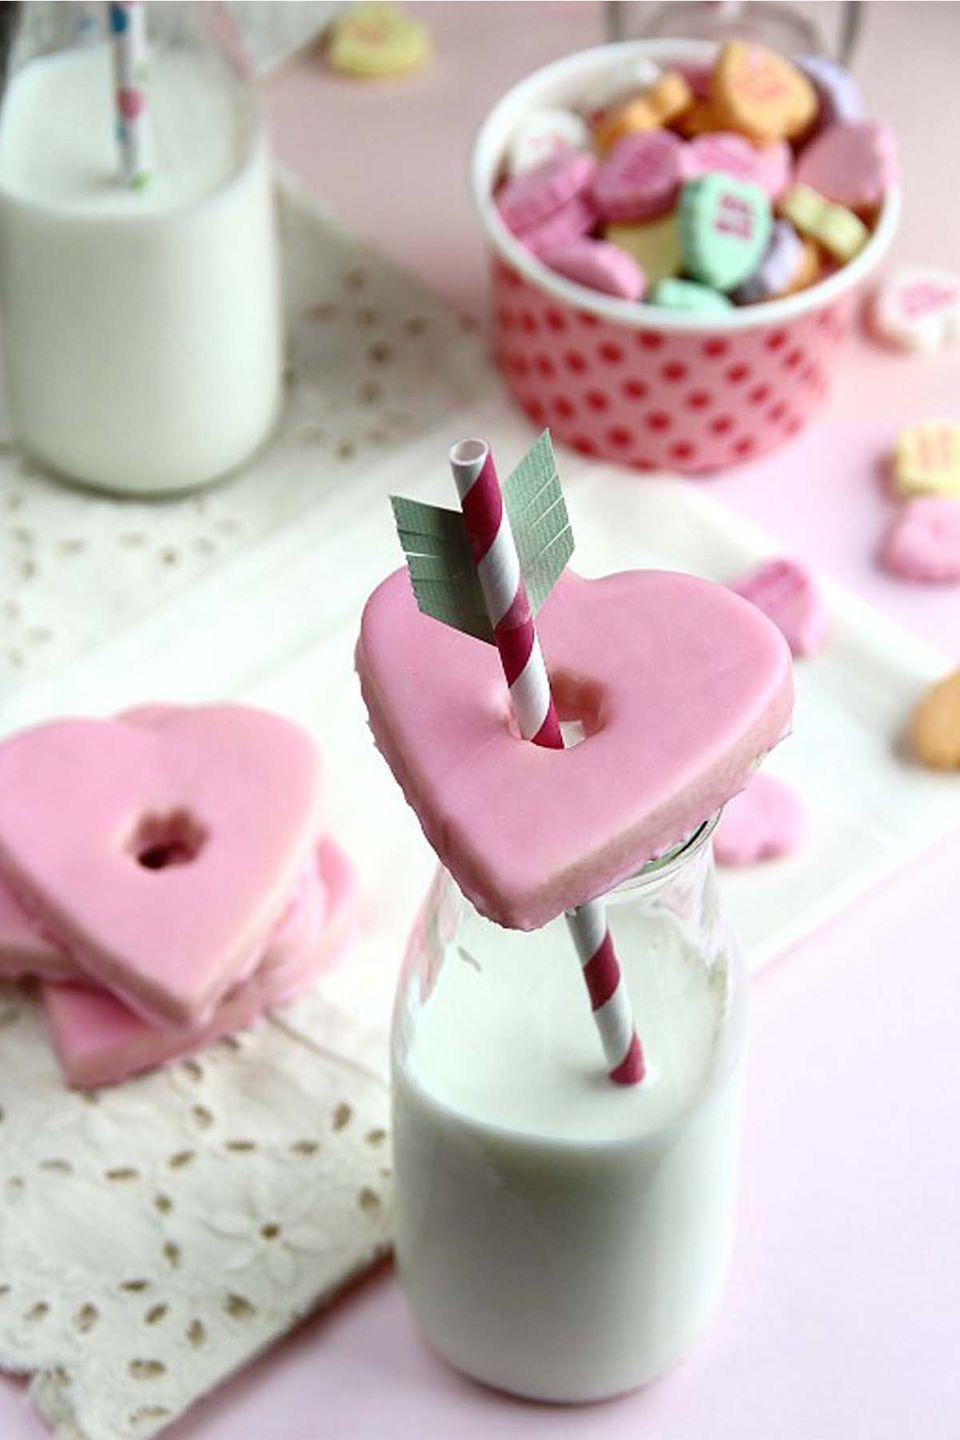 "<p>Upgrade plain old milk and cookies with this on-target idea. Using a small fondant cutter or paring knife, create a hole in a heart-shaped cookie (store-bought is fine). Place the cookie on top of a milk glass, then insert a paper straw ""arrow"" embellished with construction paper fringe.</p><p><strong>Get the recipe at <a href=""http://cookiesandcups.com/glass-topper-valentines-cookies/"" rel=""nofollow noopener"" target=""_blank"" data-ylk=""slk:Cookies and Cups"" class=""link rapid-noclick-resp"">Cookies and Cups</a>. </strong></p>"